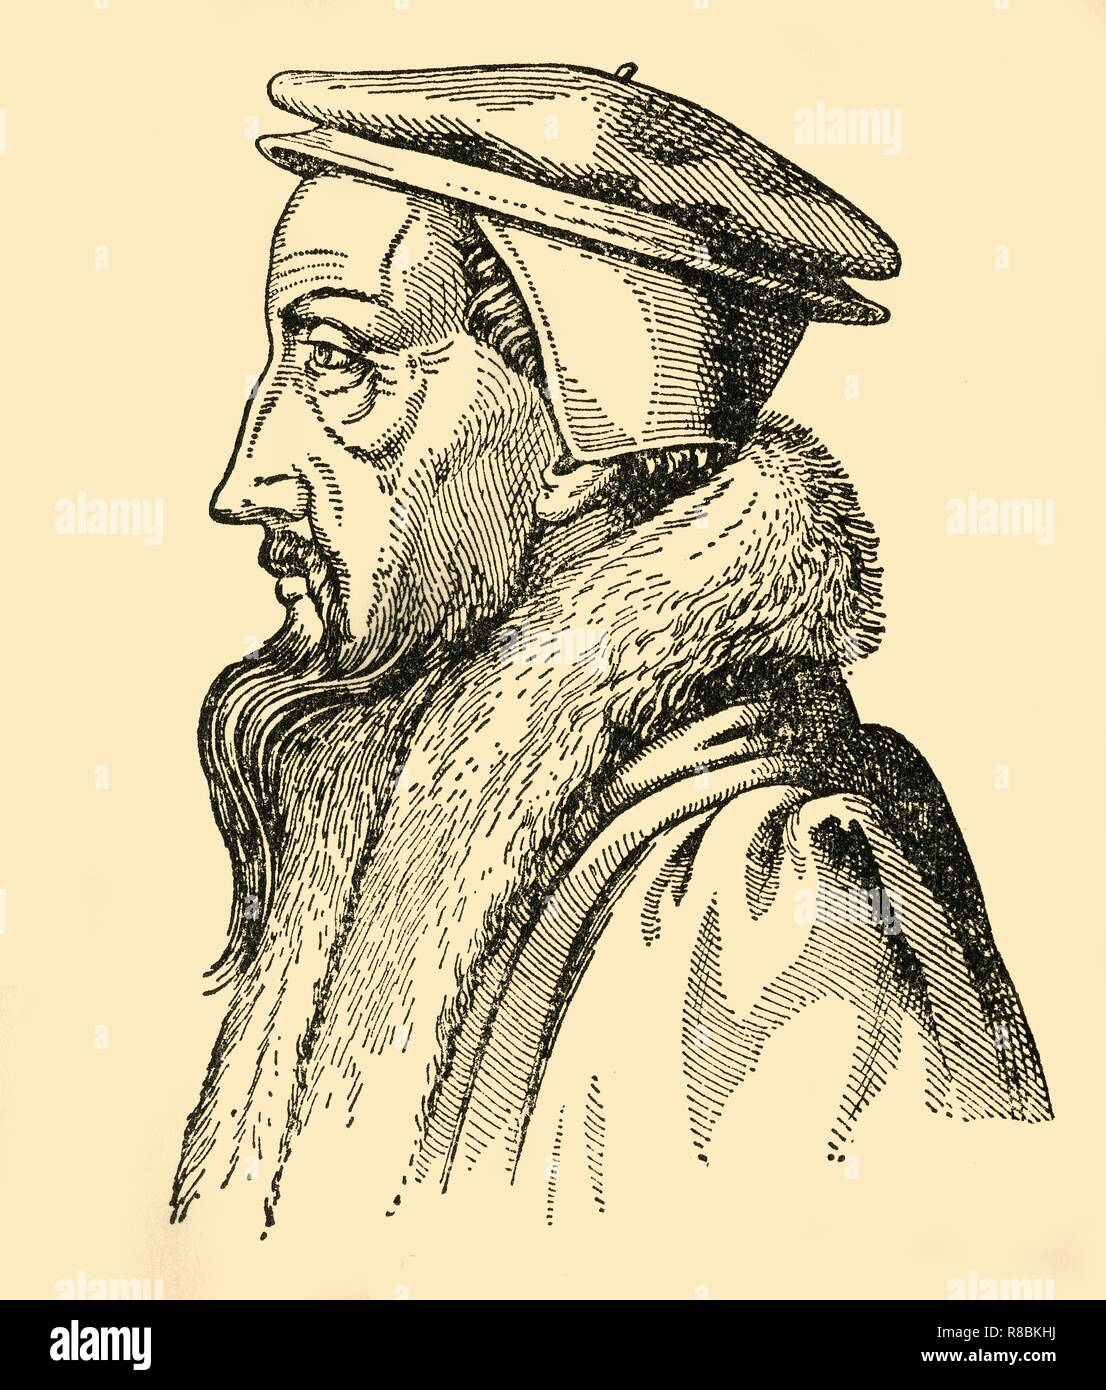 "'Johannes Calvin', (1933). Portrait of French theologian John Calvin (1509-1564). Calvin settled in Geneva and became a leading figure in the Protestant Reformation. He gave his name to the strict form of Protestantism, Calvinism. From ""Gestalten Der Weltgeschichte"", a book of cigarette-card portrait miniatures of figures in world history from the last four hundred years. [Germany, 1933] - Stock Image"